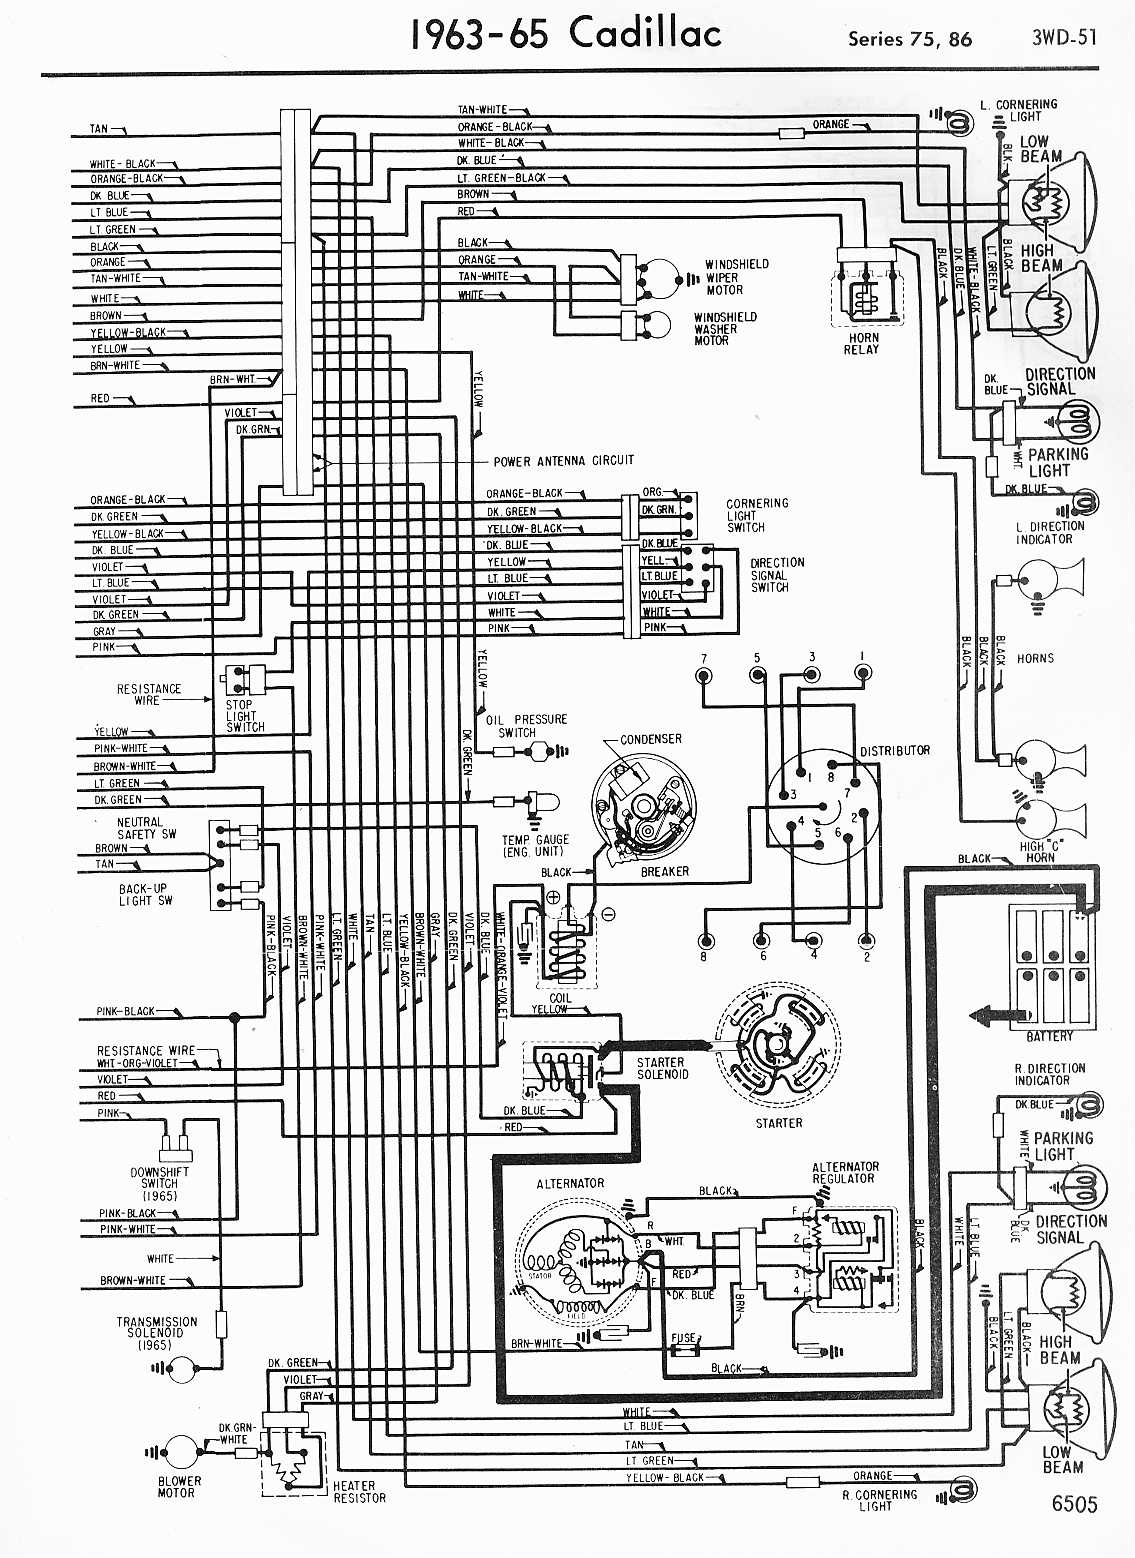 MWireCadi65_3WD 051 cadillac wiring diagrams 1957 1965 1955 plymouth wiring diagram at nearapp.co